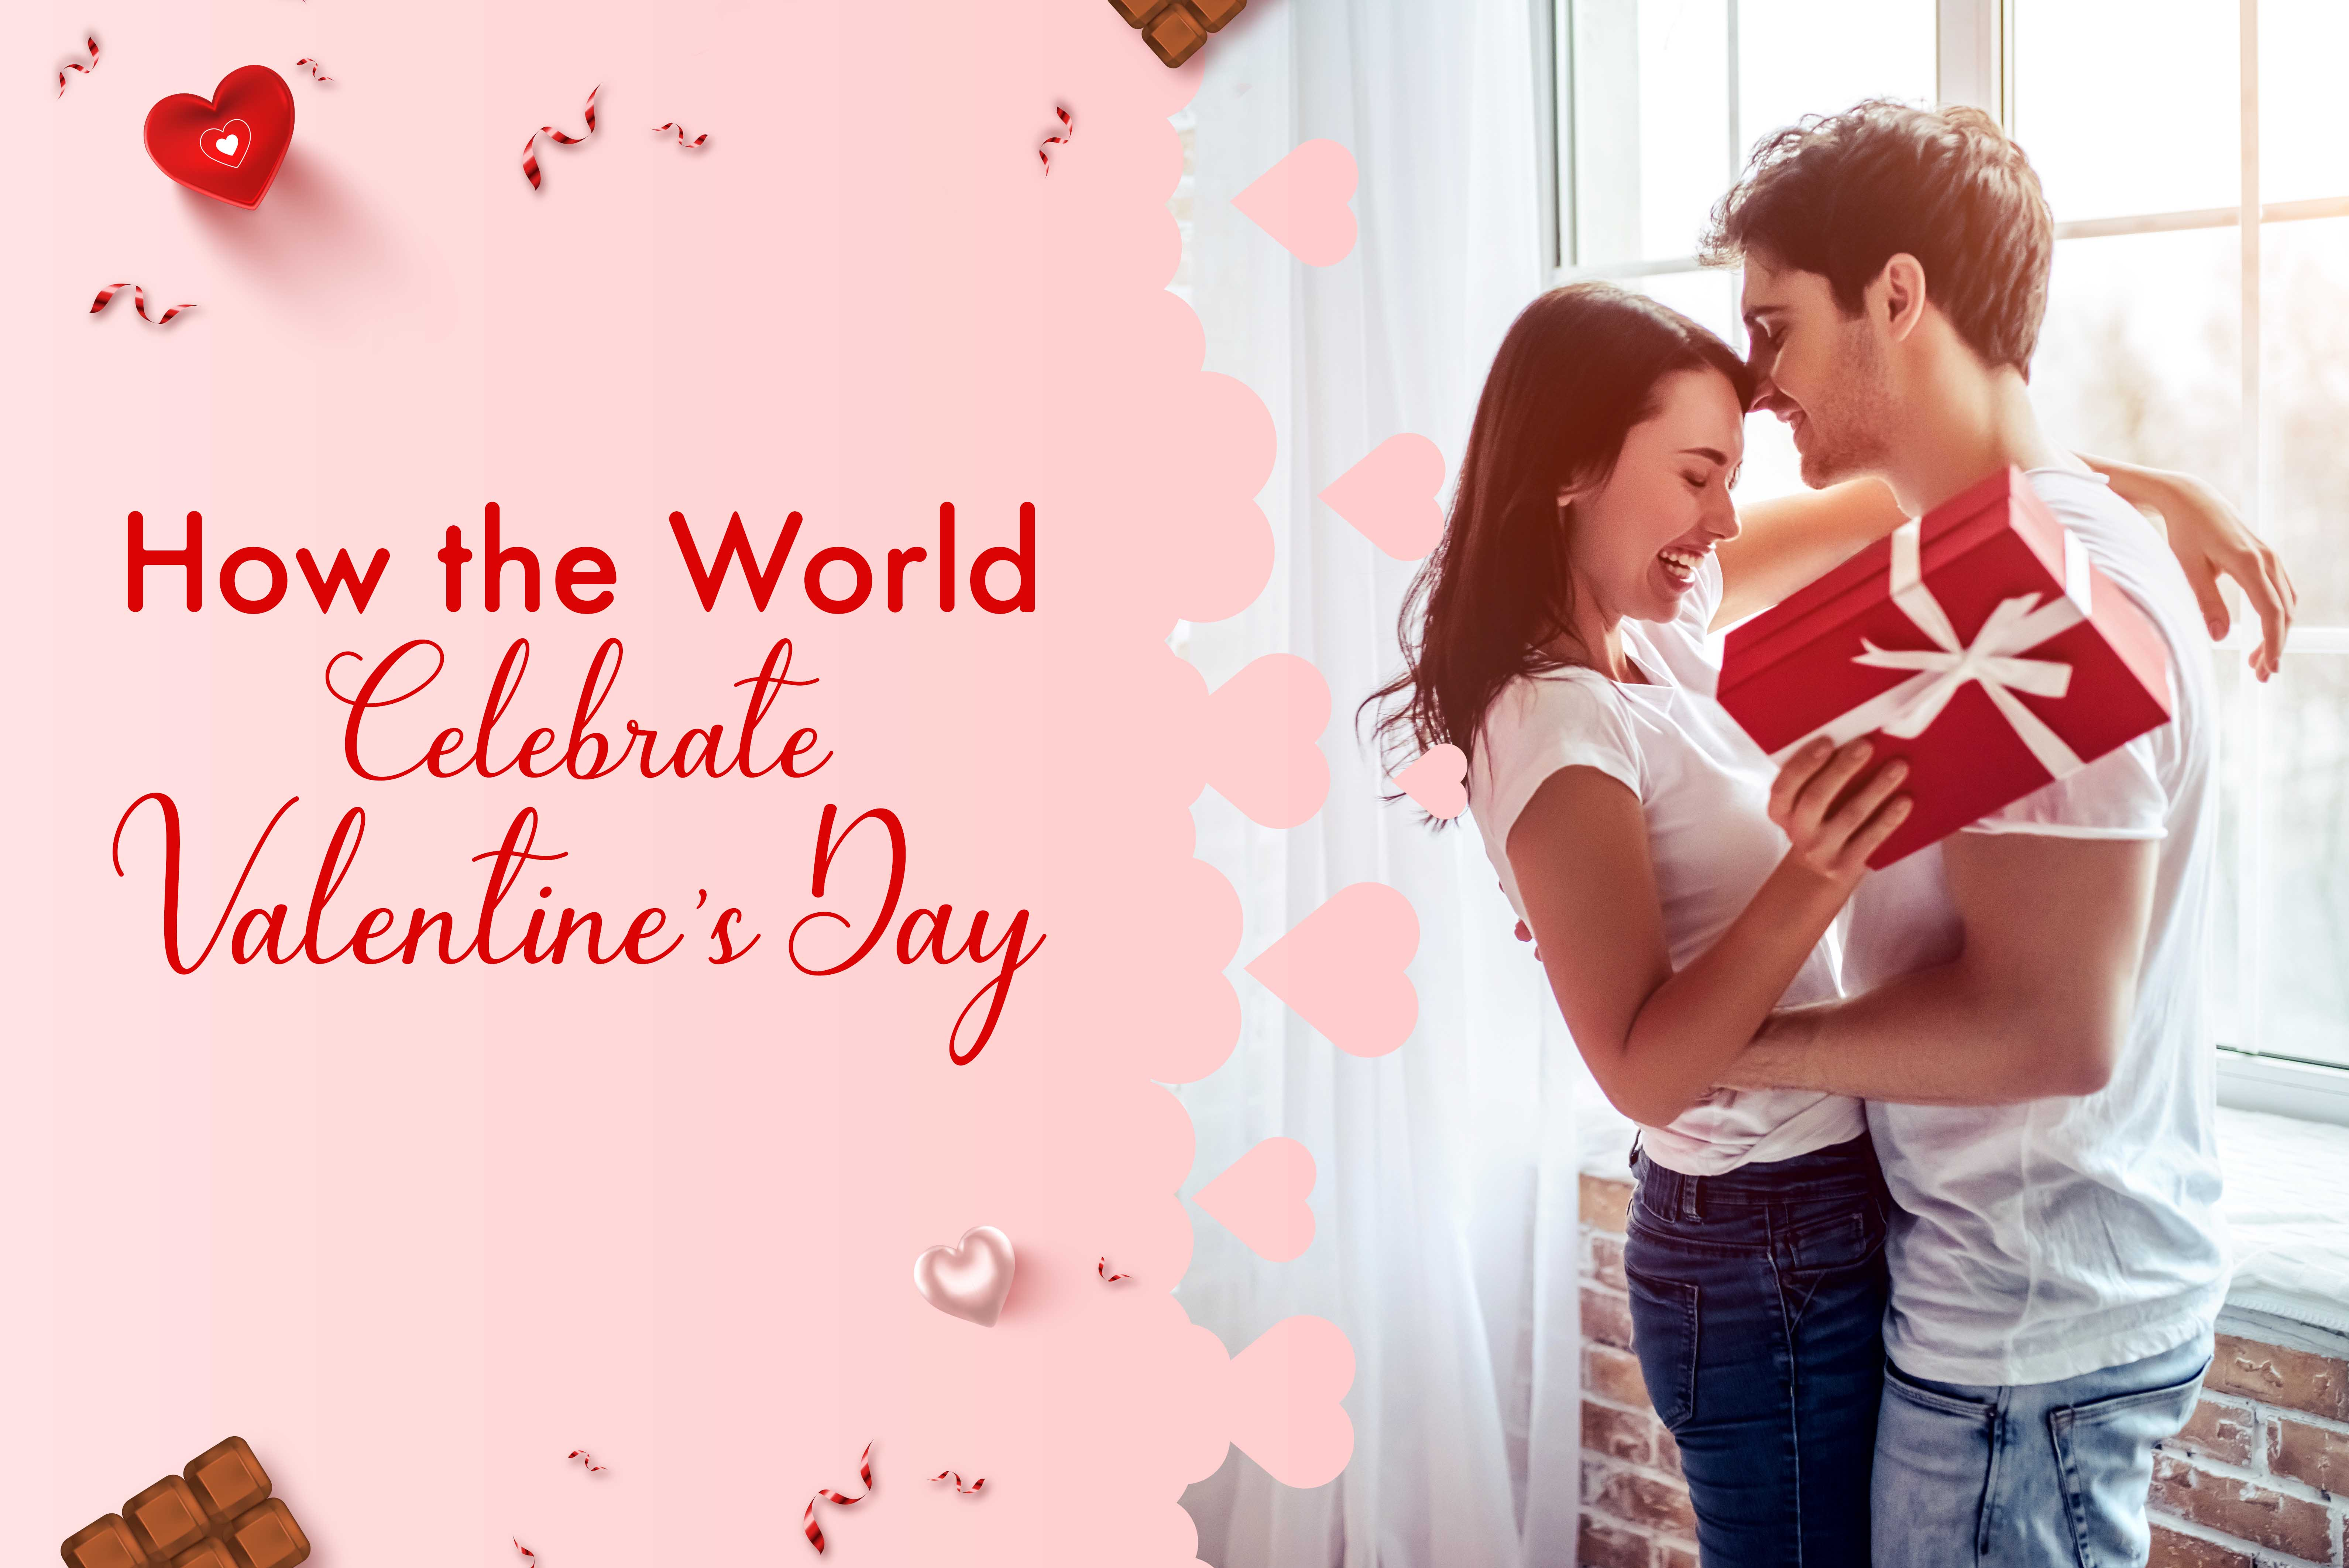 Find Out How the World Celebrate Valentine's Day